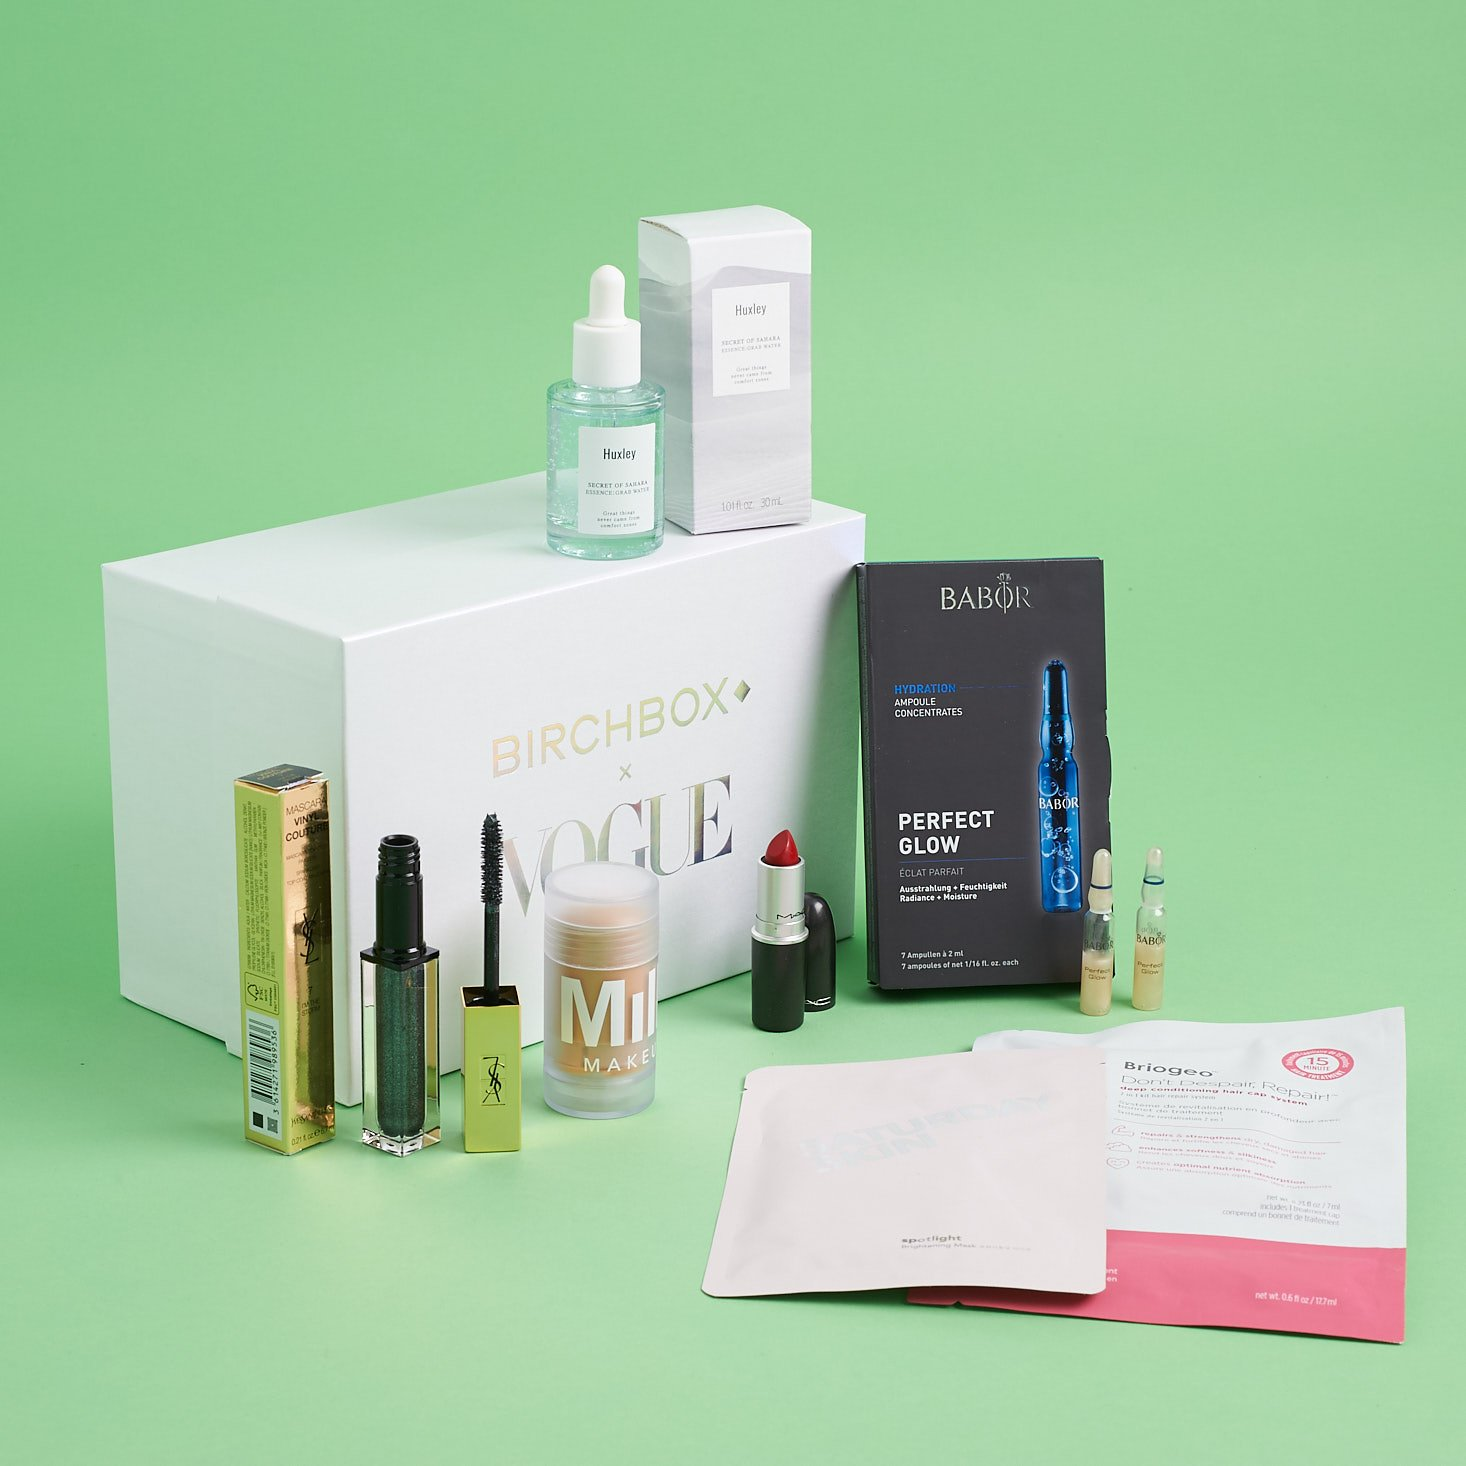 How Much Does BirchBox Cost?